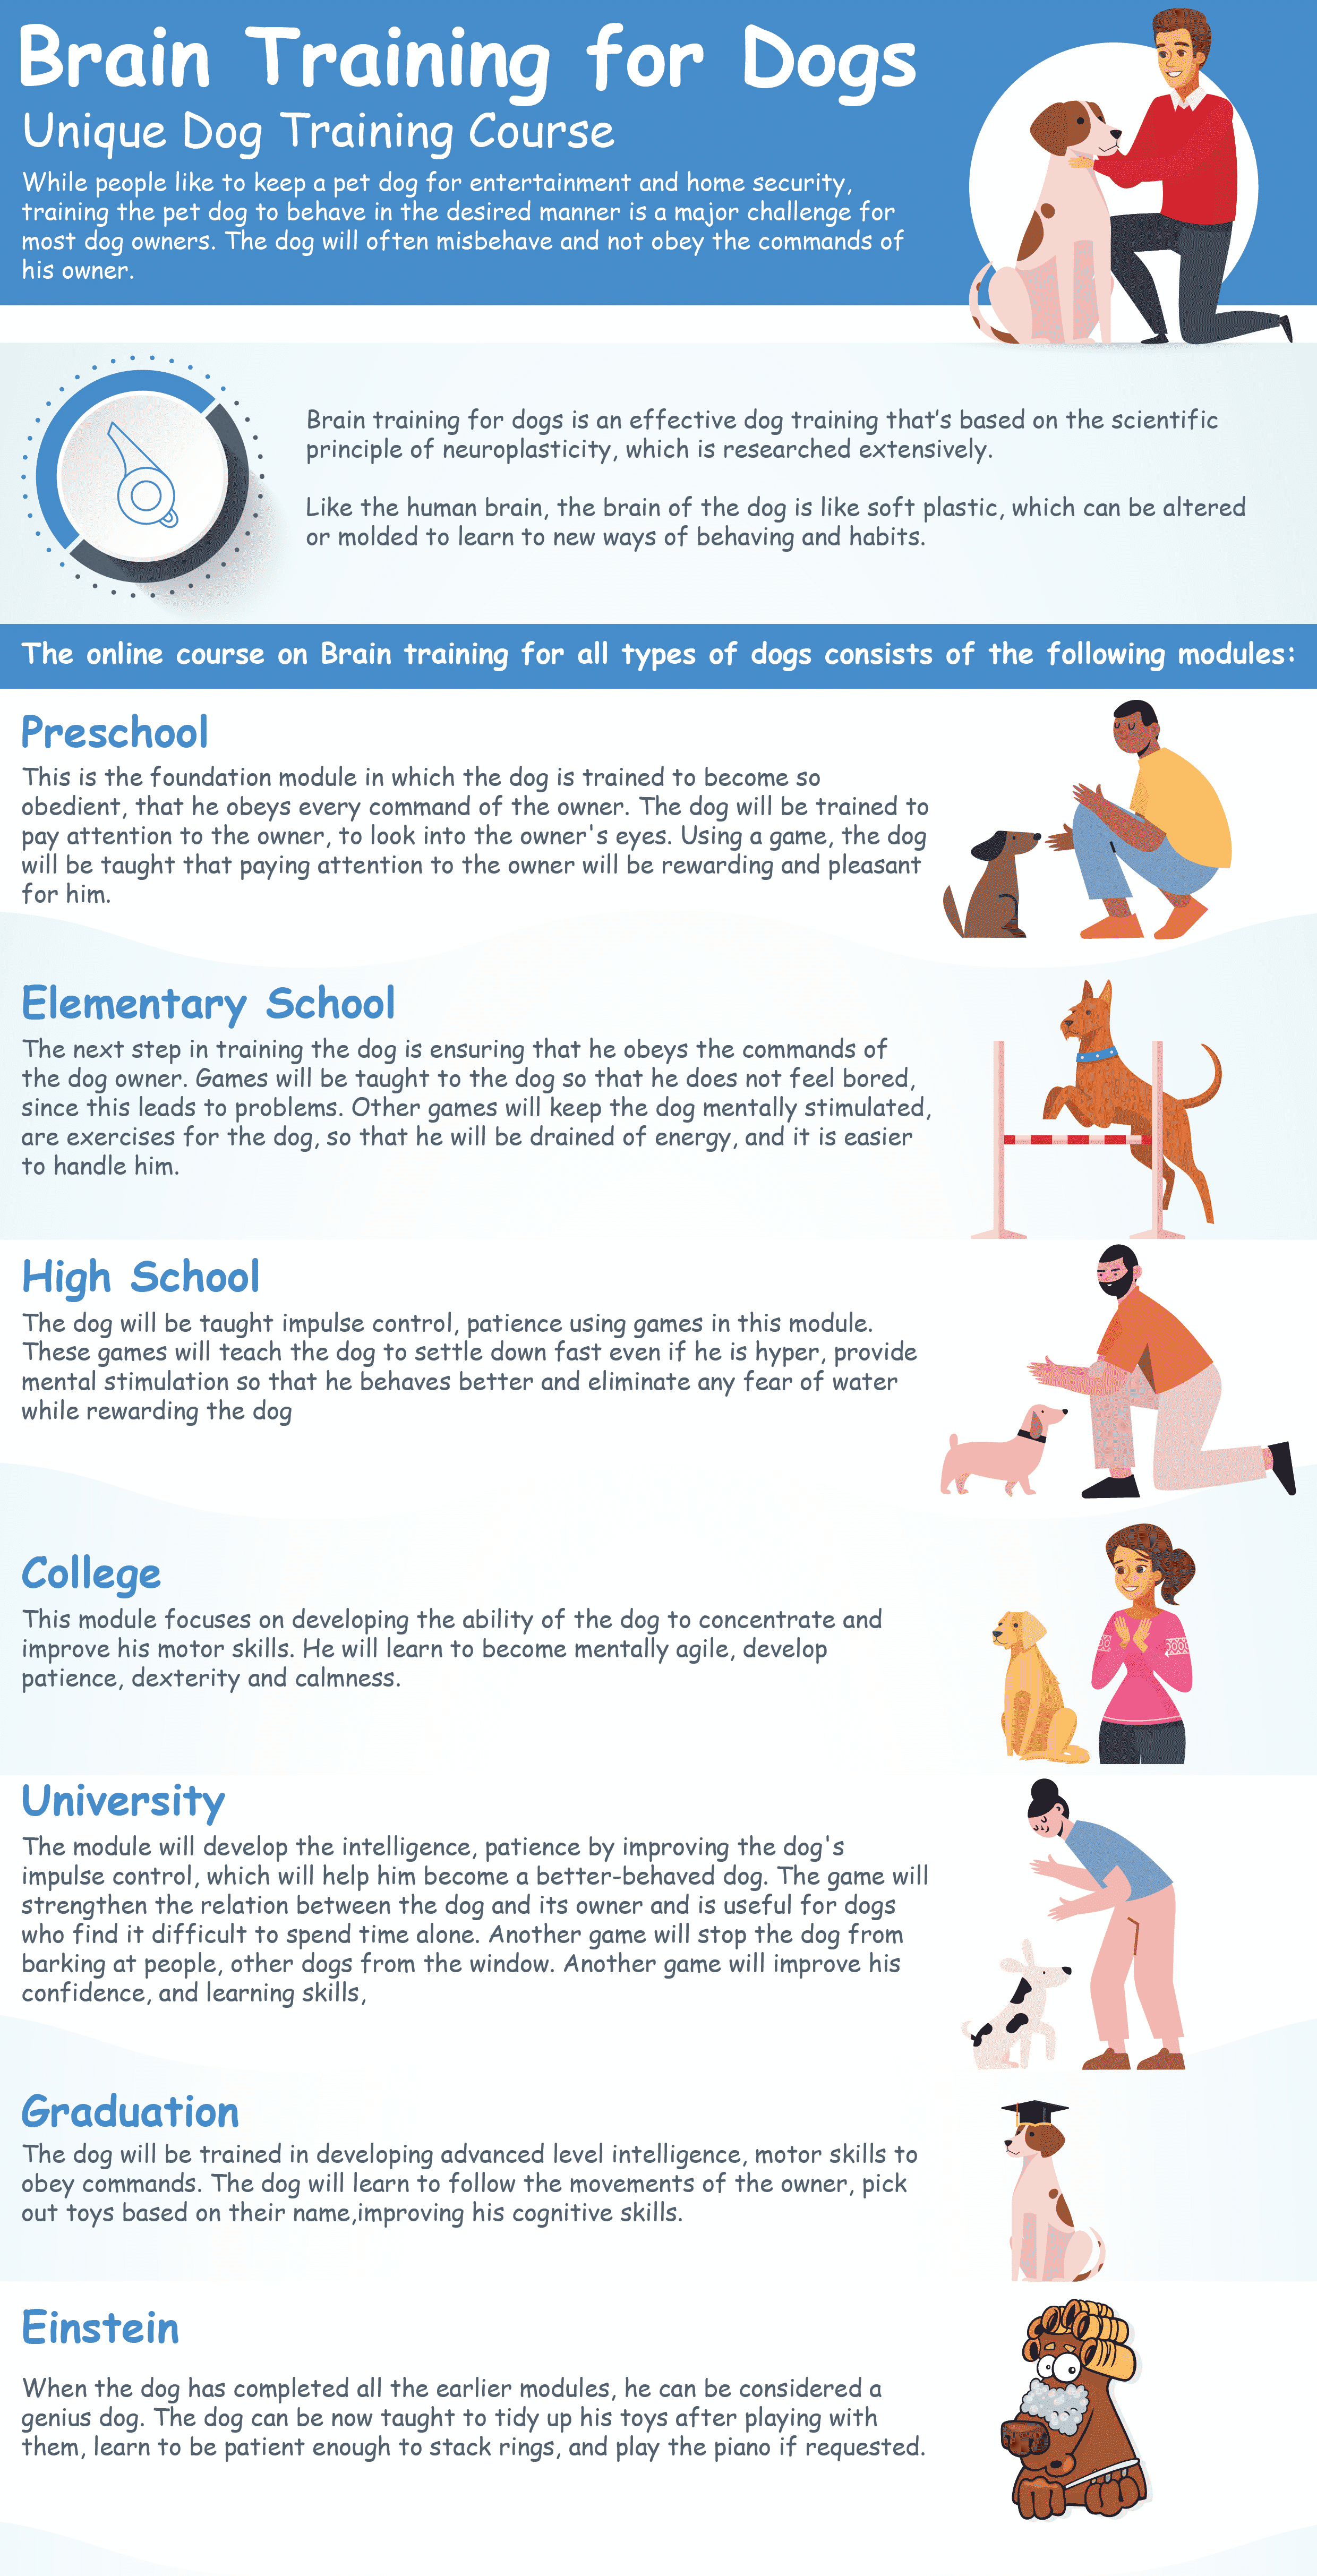 Brain Training for Dogs-Unique Dog Training Course Review